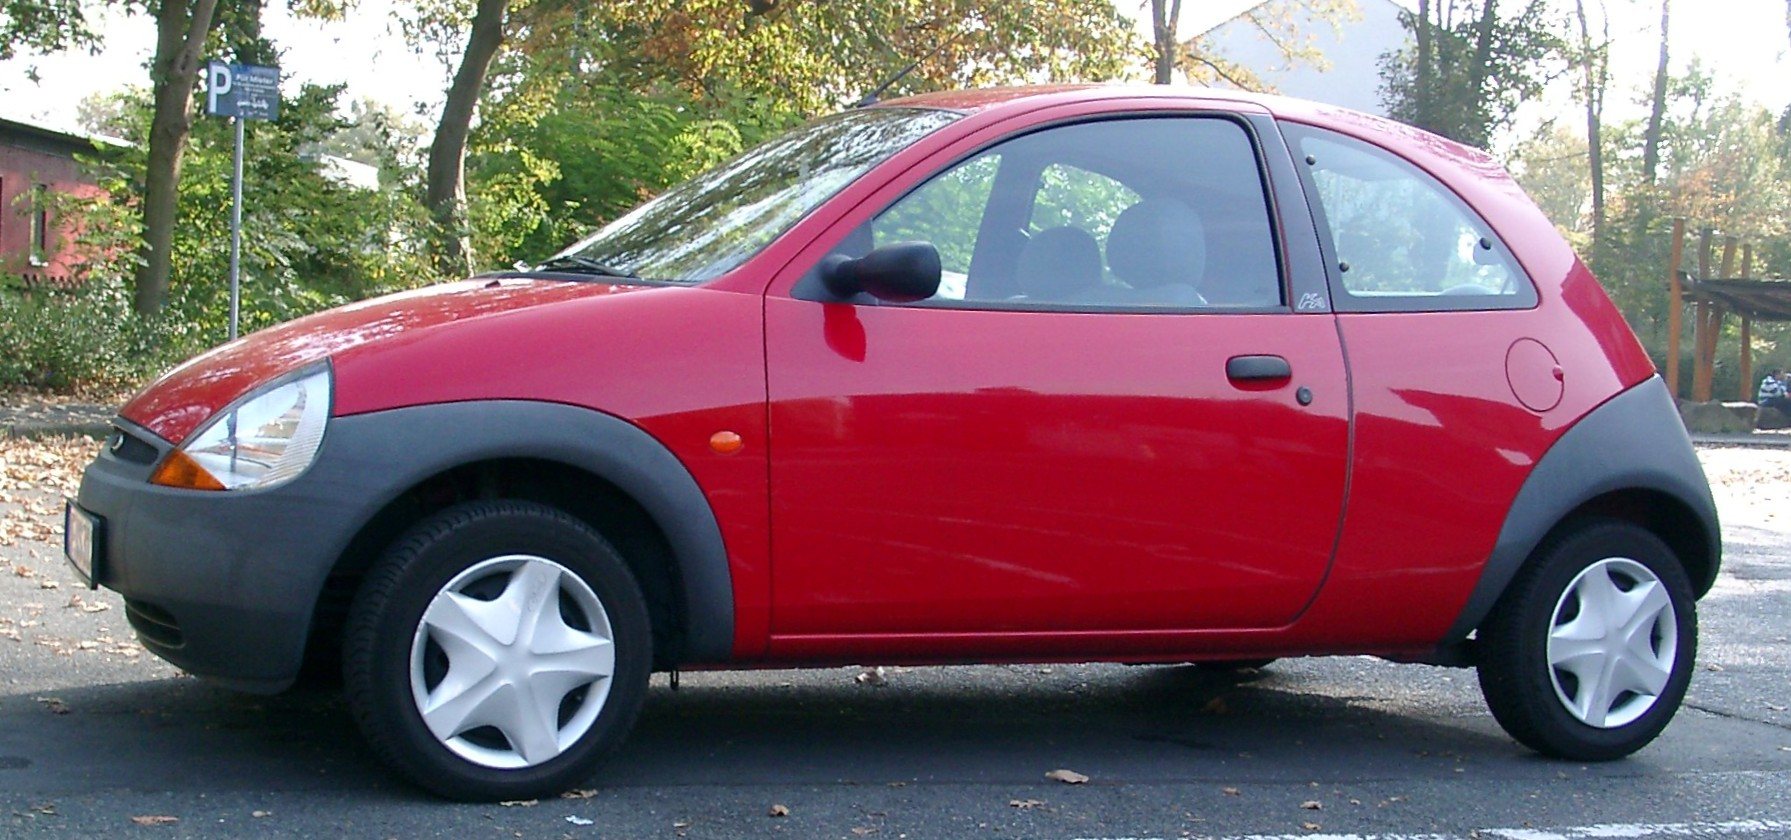 Honda S2000 Specs >> 2007 Ford Ka – pictures, information and specs - Auto ...